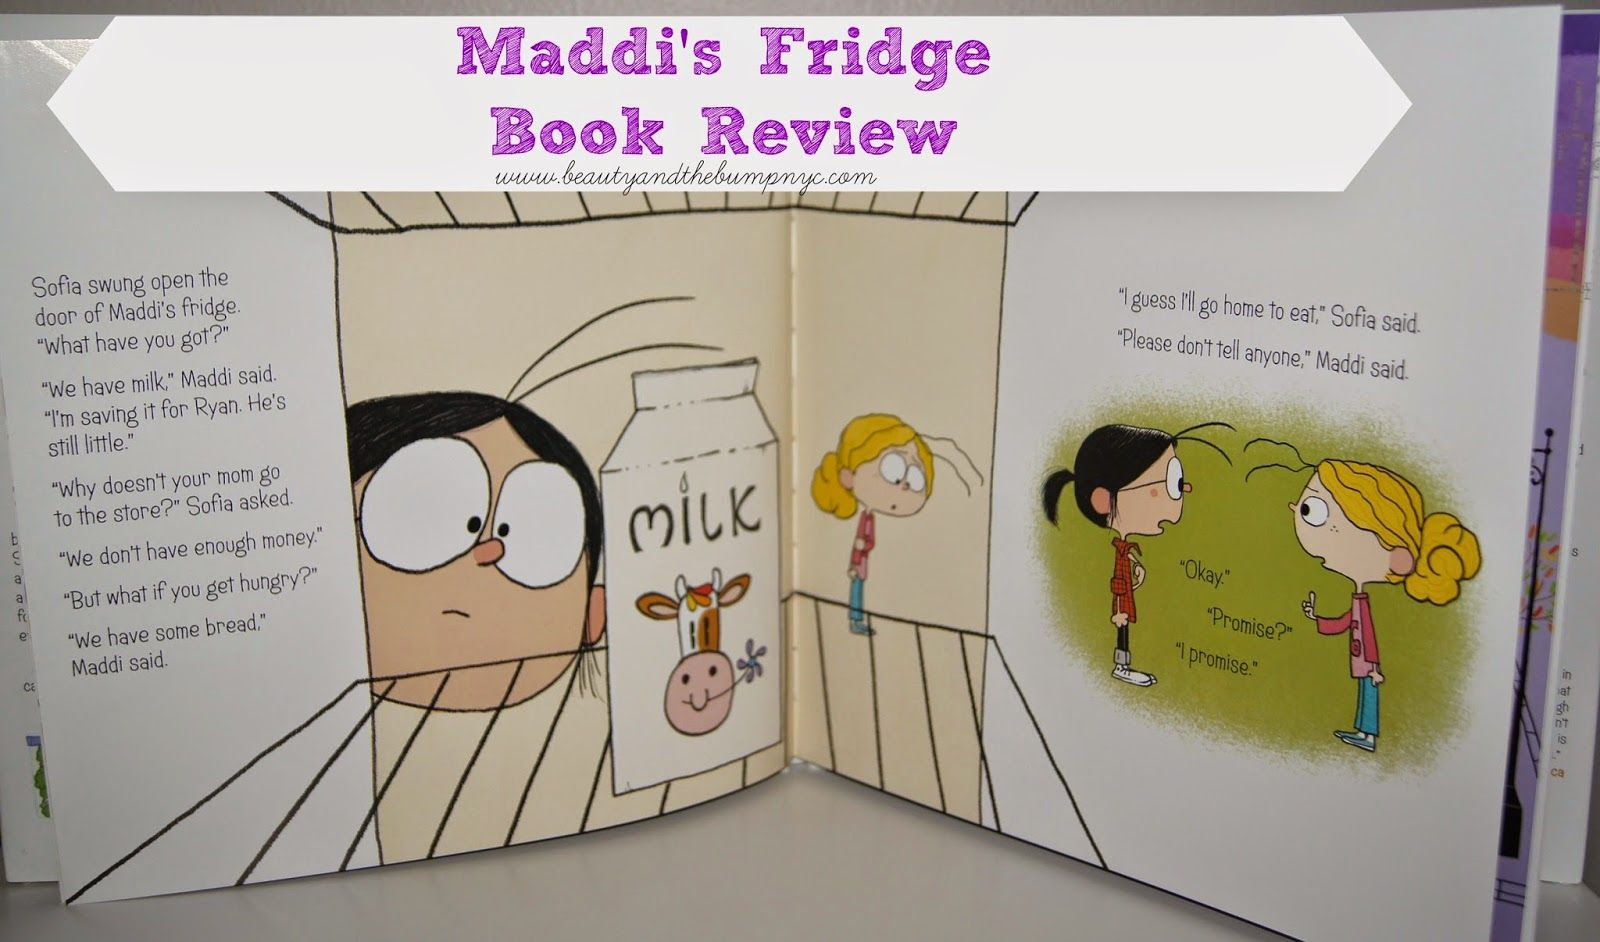 Beauty and the Bump: Maddi's Fridge by Lois Brandt Book Review #ChildHunger #Poverty @MaddisFridge